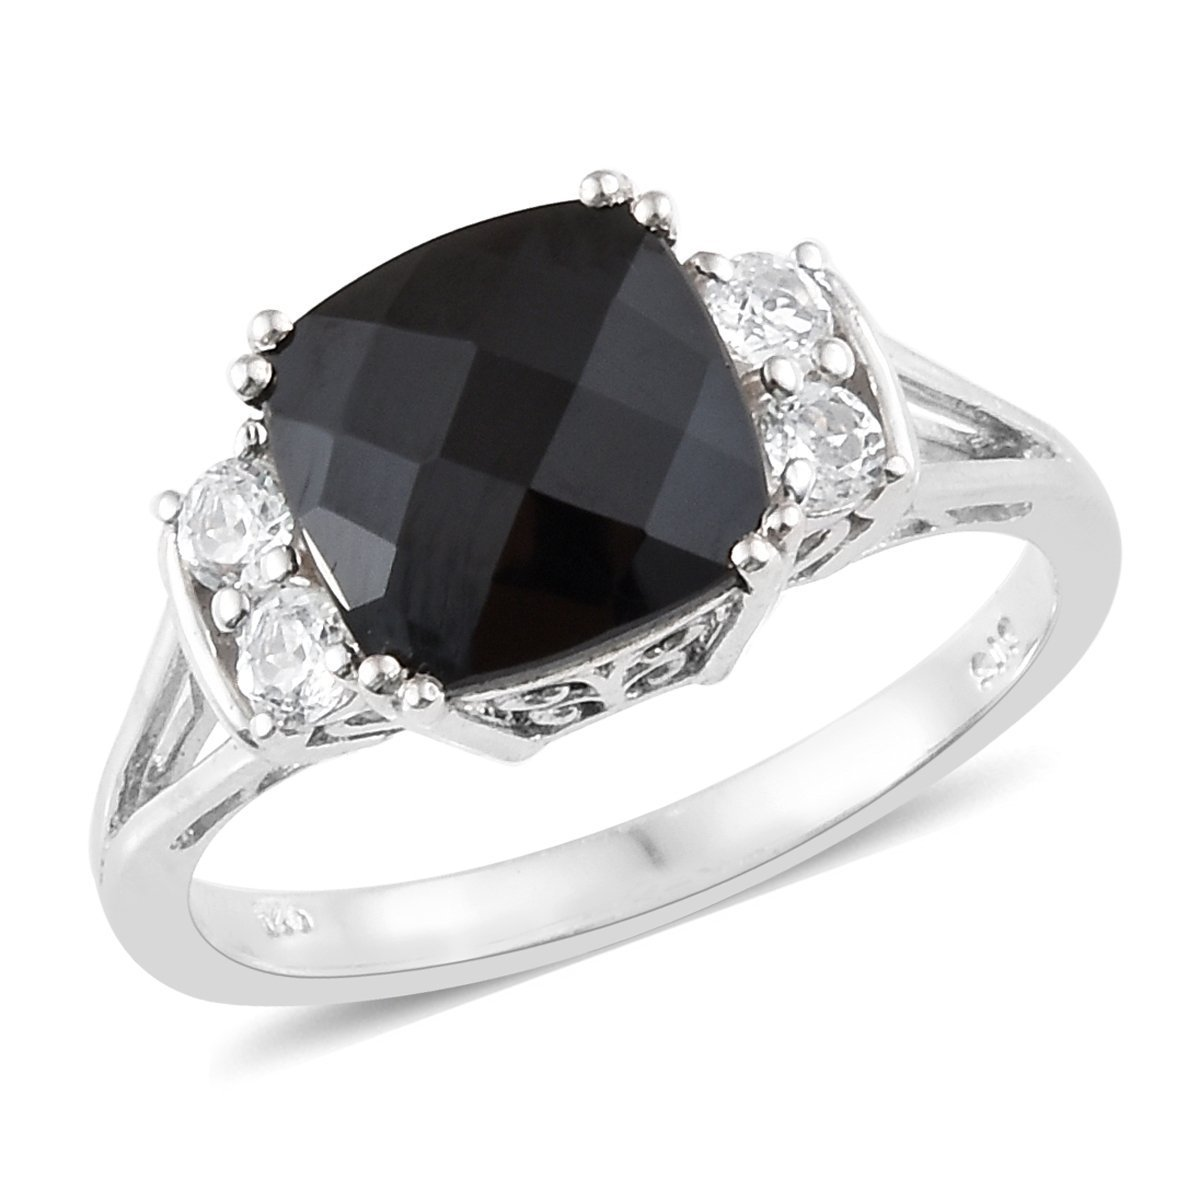 925 Sterling Silver Platinum Plated Cushion Black Spinel, White Topaz Fashion Ring for Women Size 7